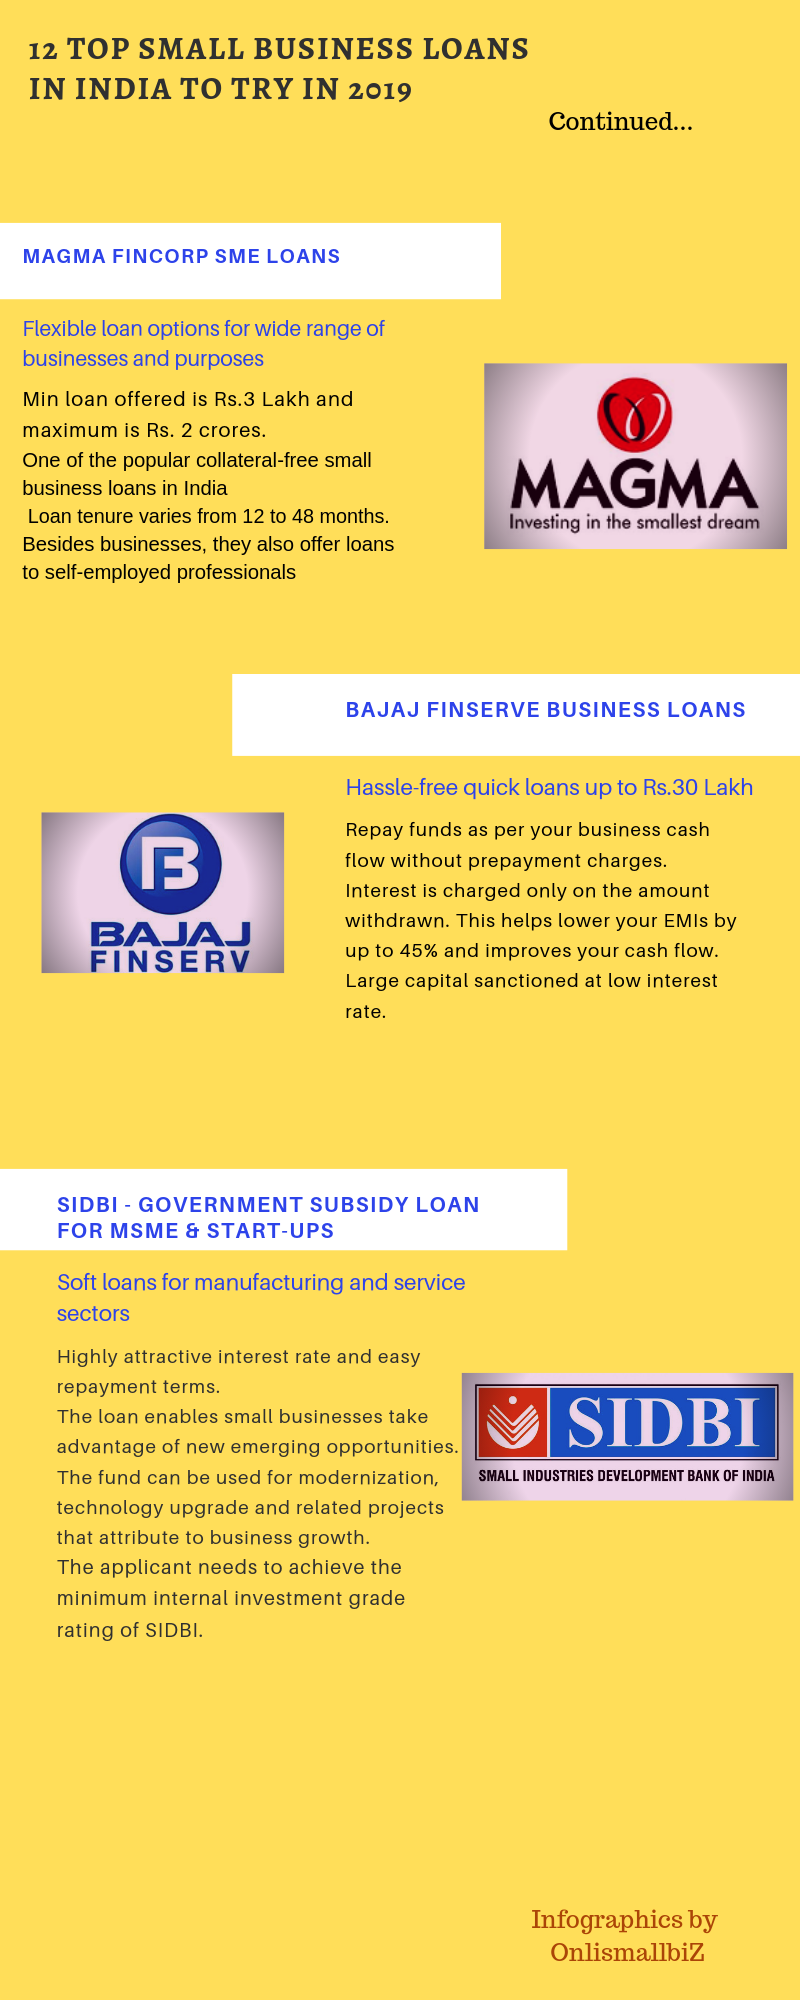 SMB loans in India